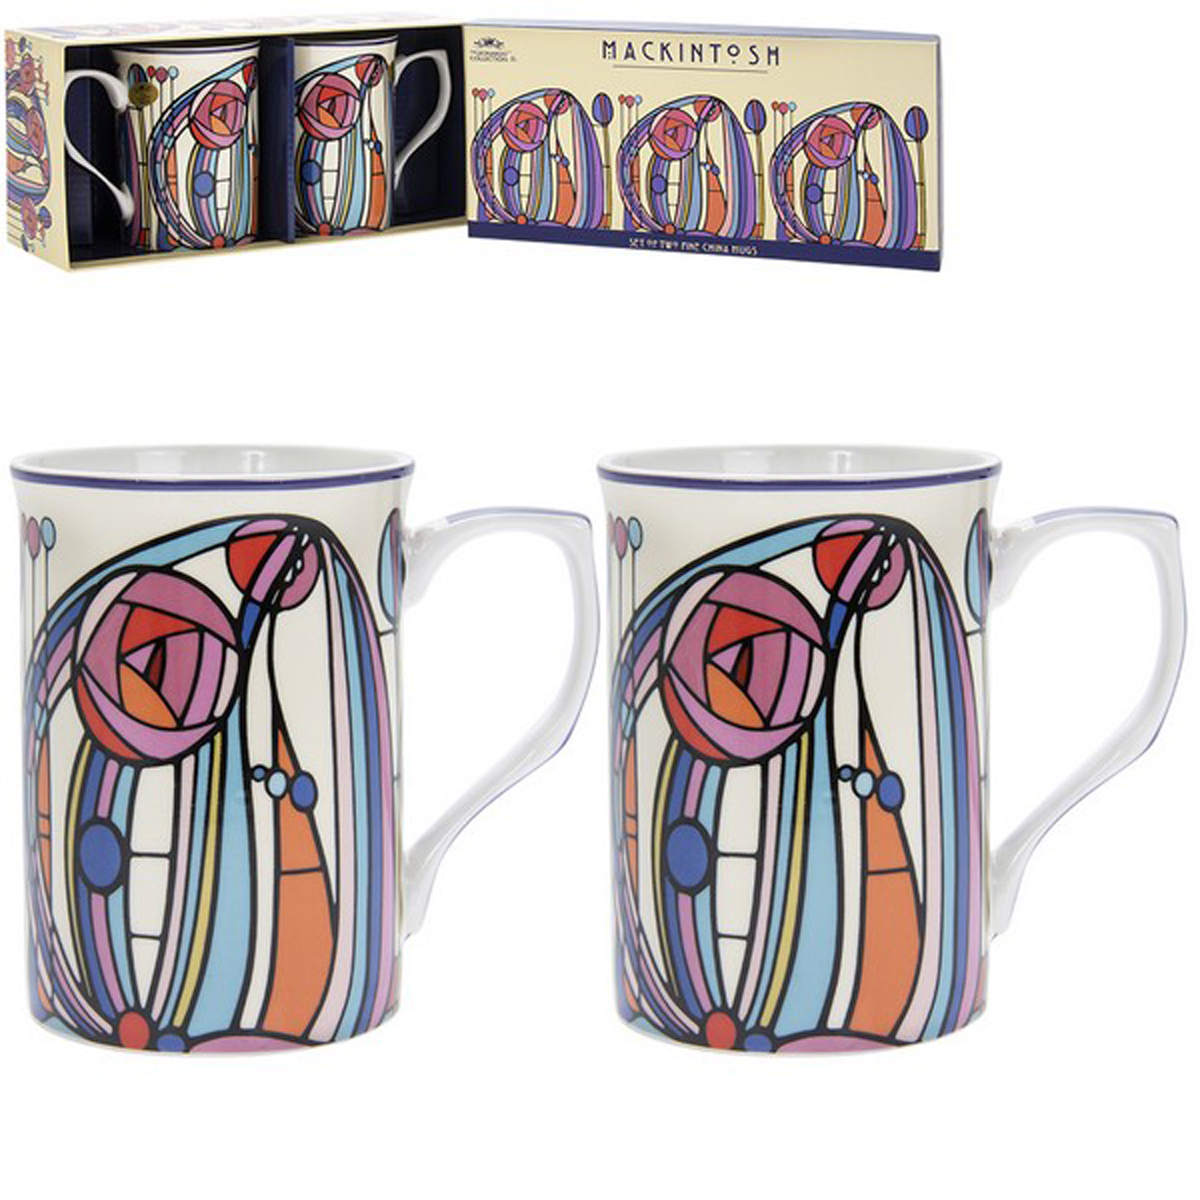 Coffret 2 mugs porcelaine \'Mackintosh\' multicolore - 10x75 cm - [R1770]